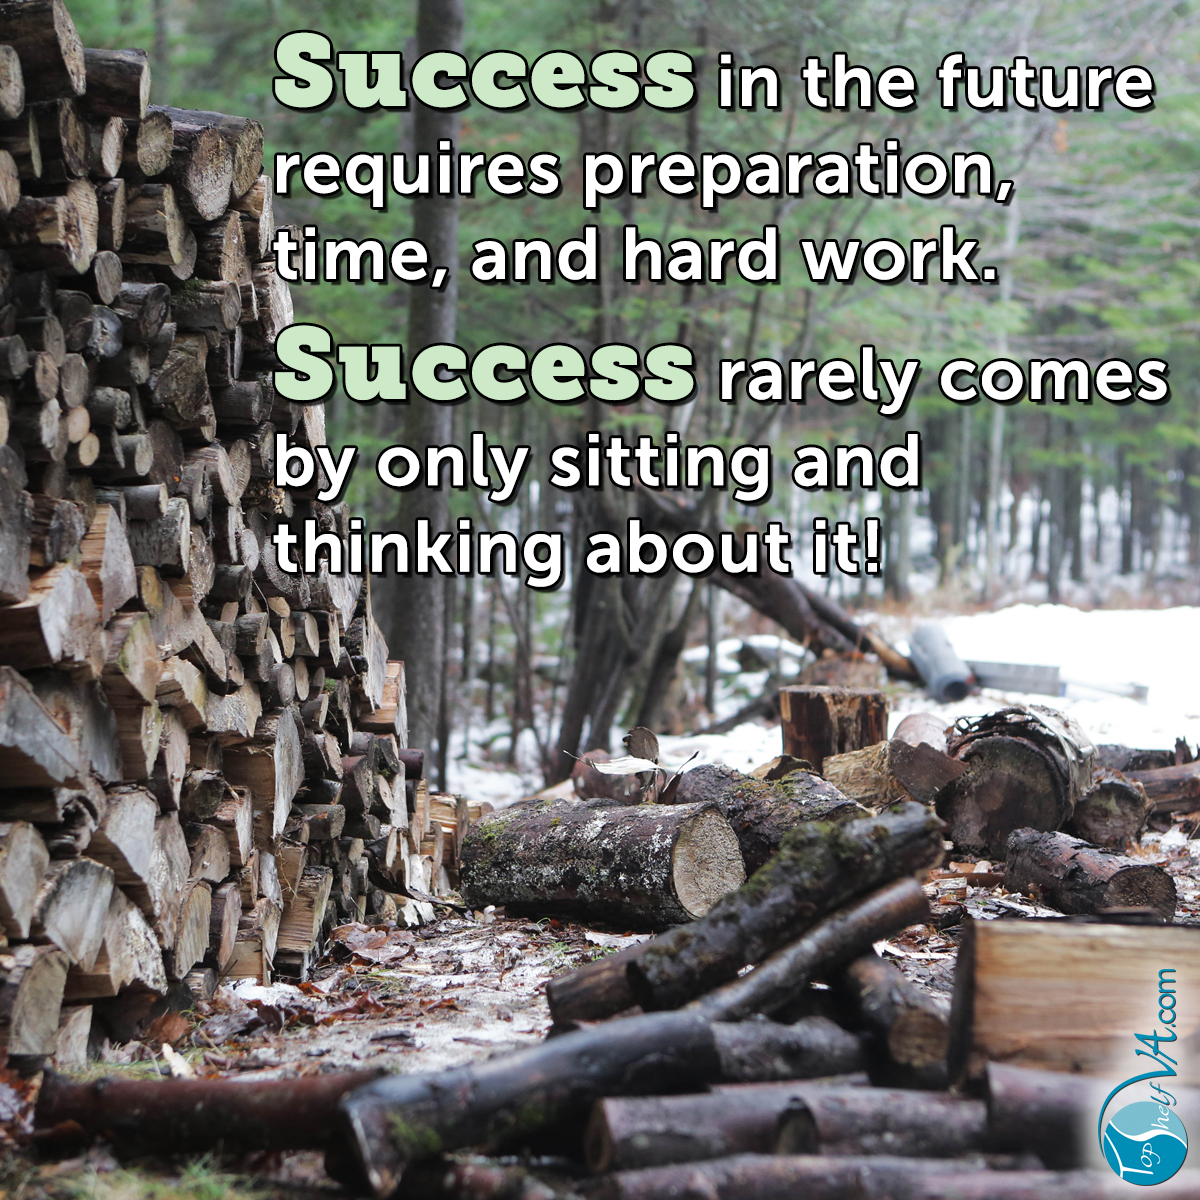 Top Shelf VA Services: Success in the future requires preparation, time, and hard work. Success rarely comes by only sitting and thinking about it!